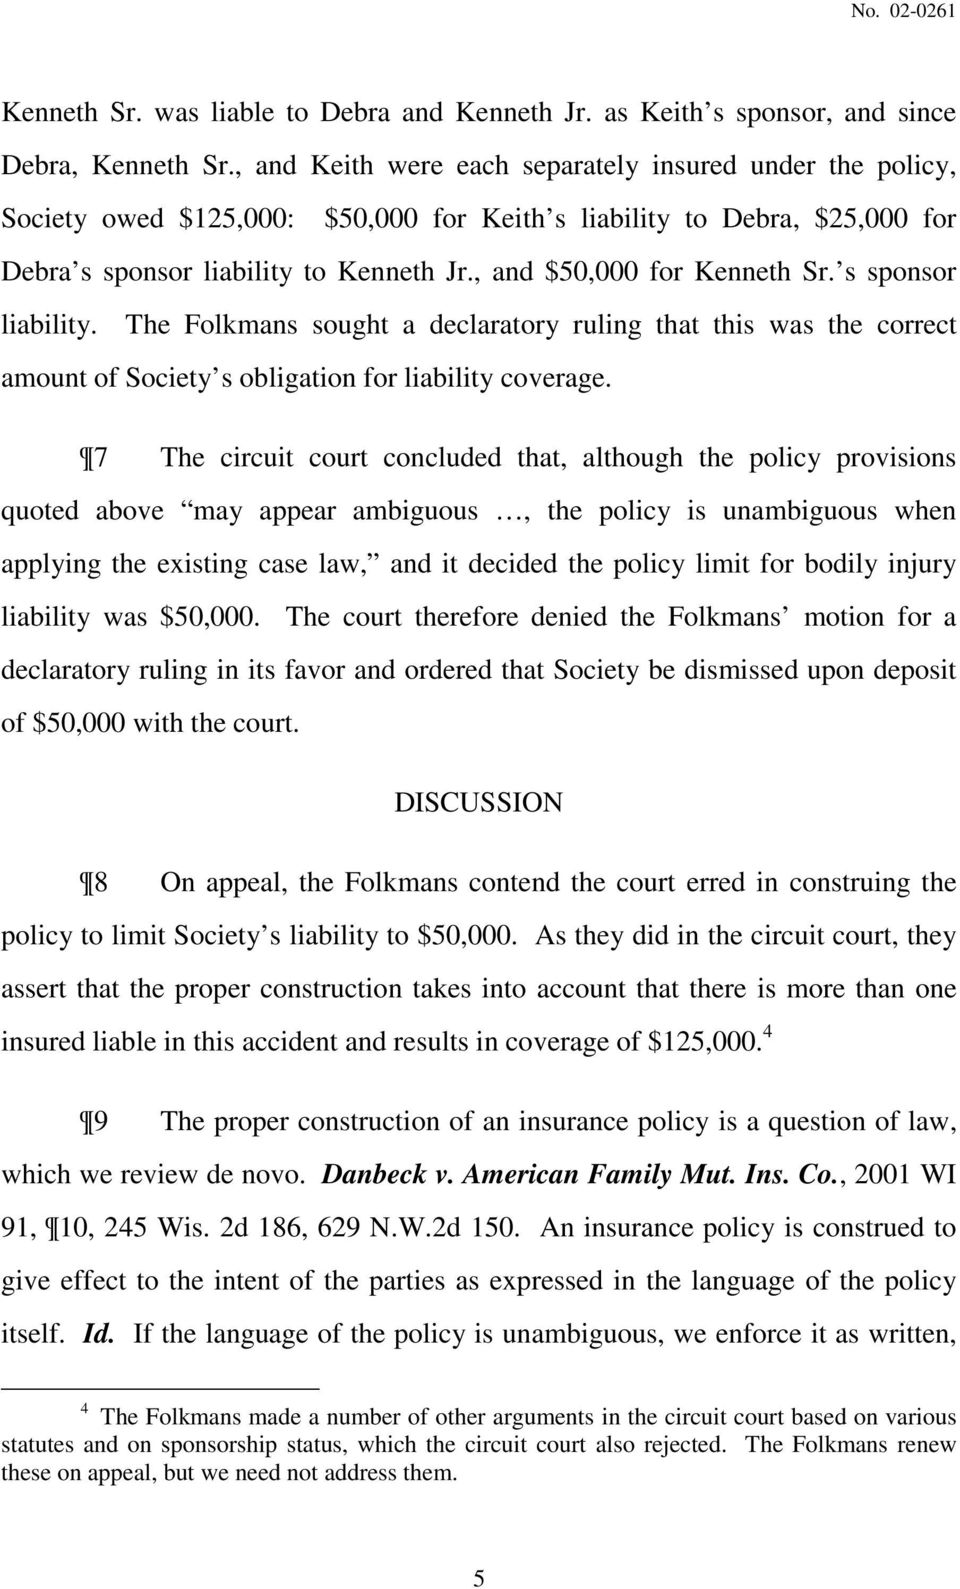 , and $50,000 for Kenneth Sr. s sponsor liability. The Folkmans sought a declaratory ruling that this was the correct amount of Society s obligation for liability coverage.